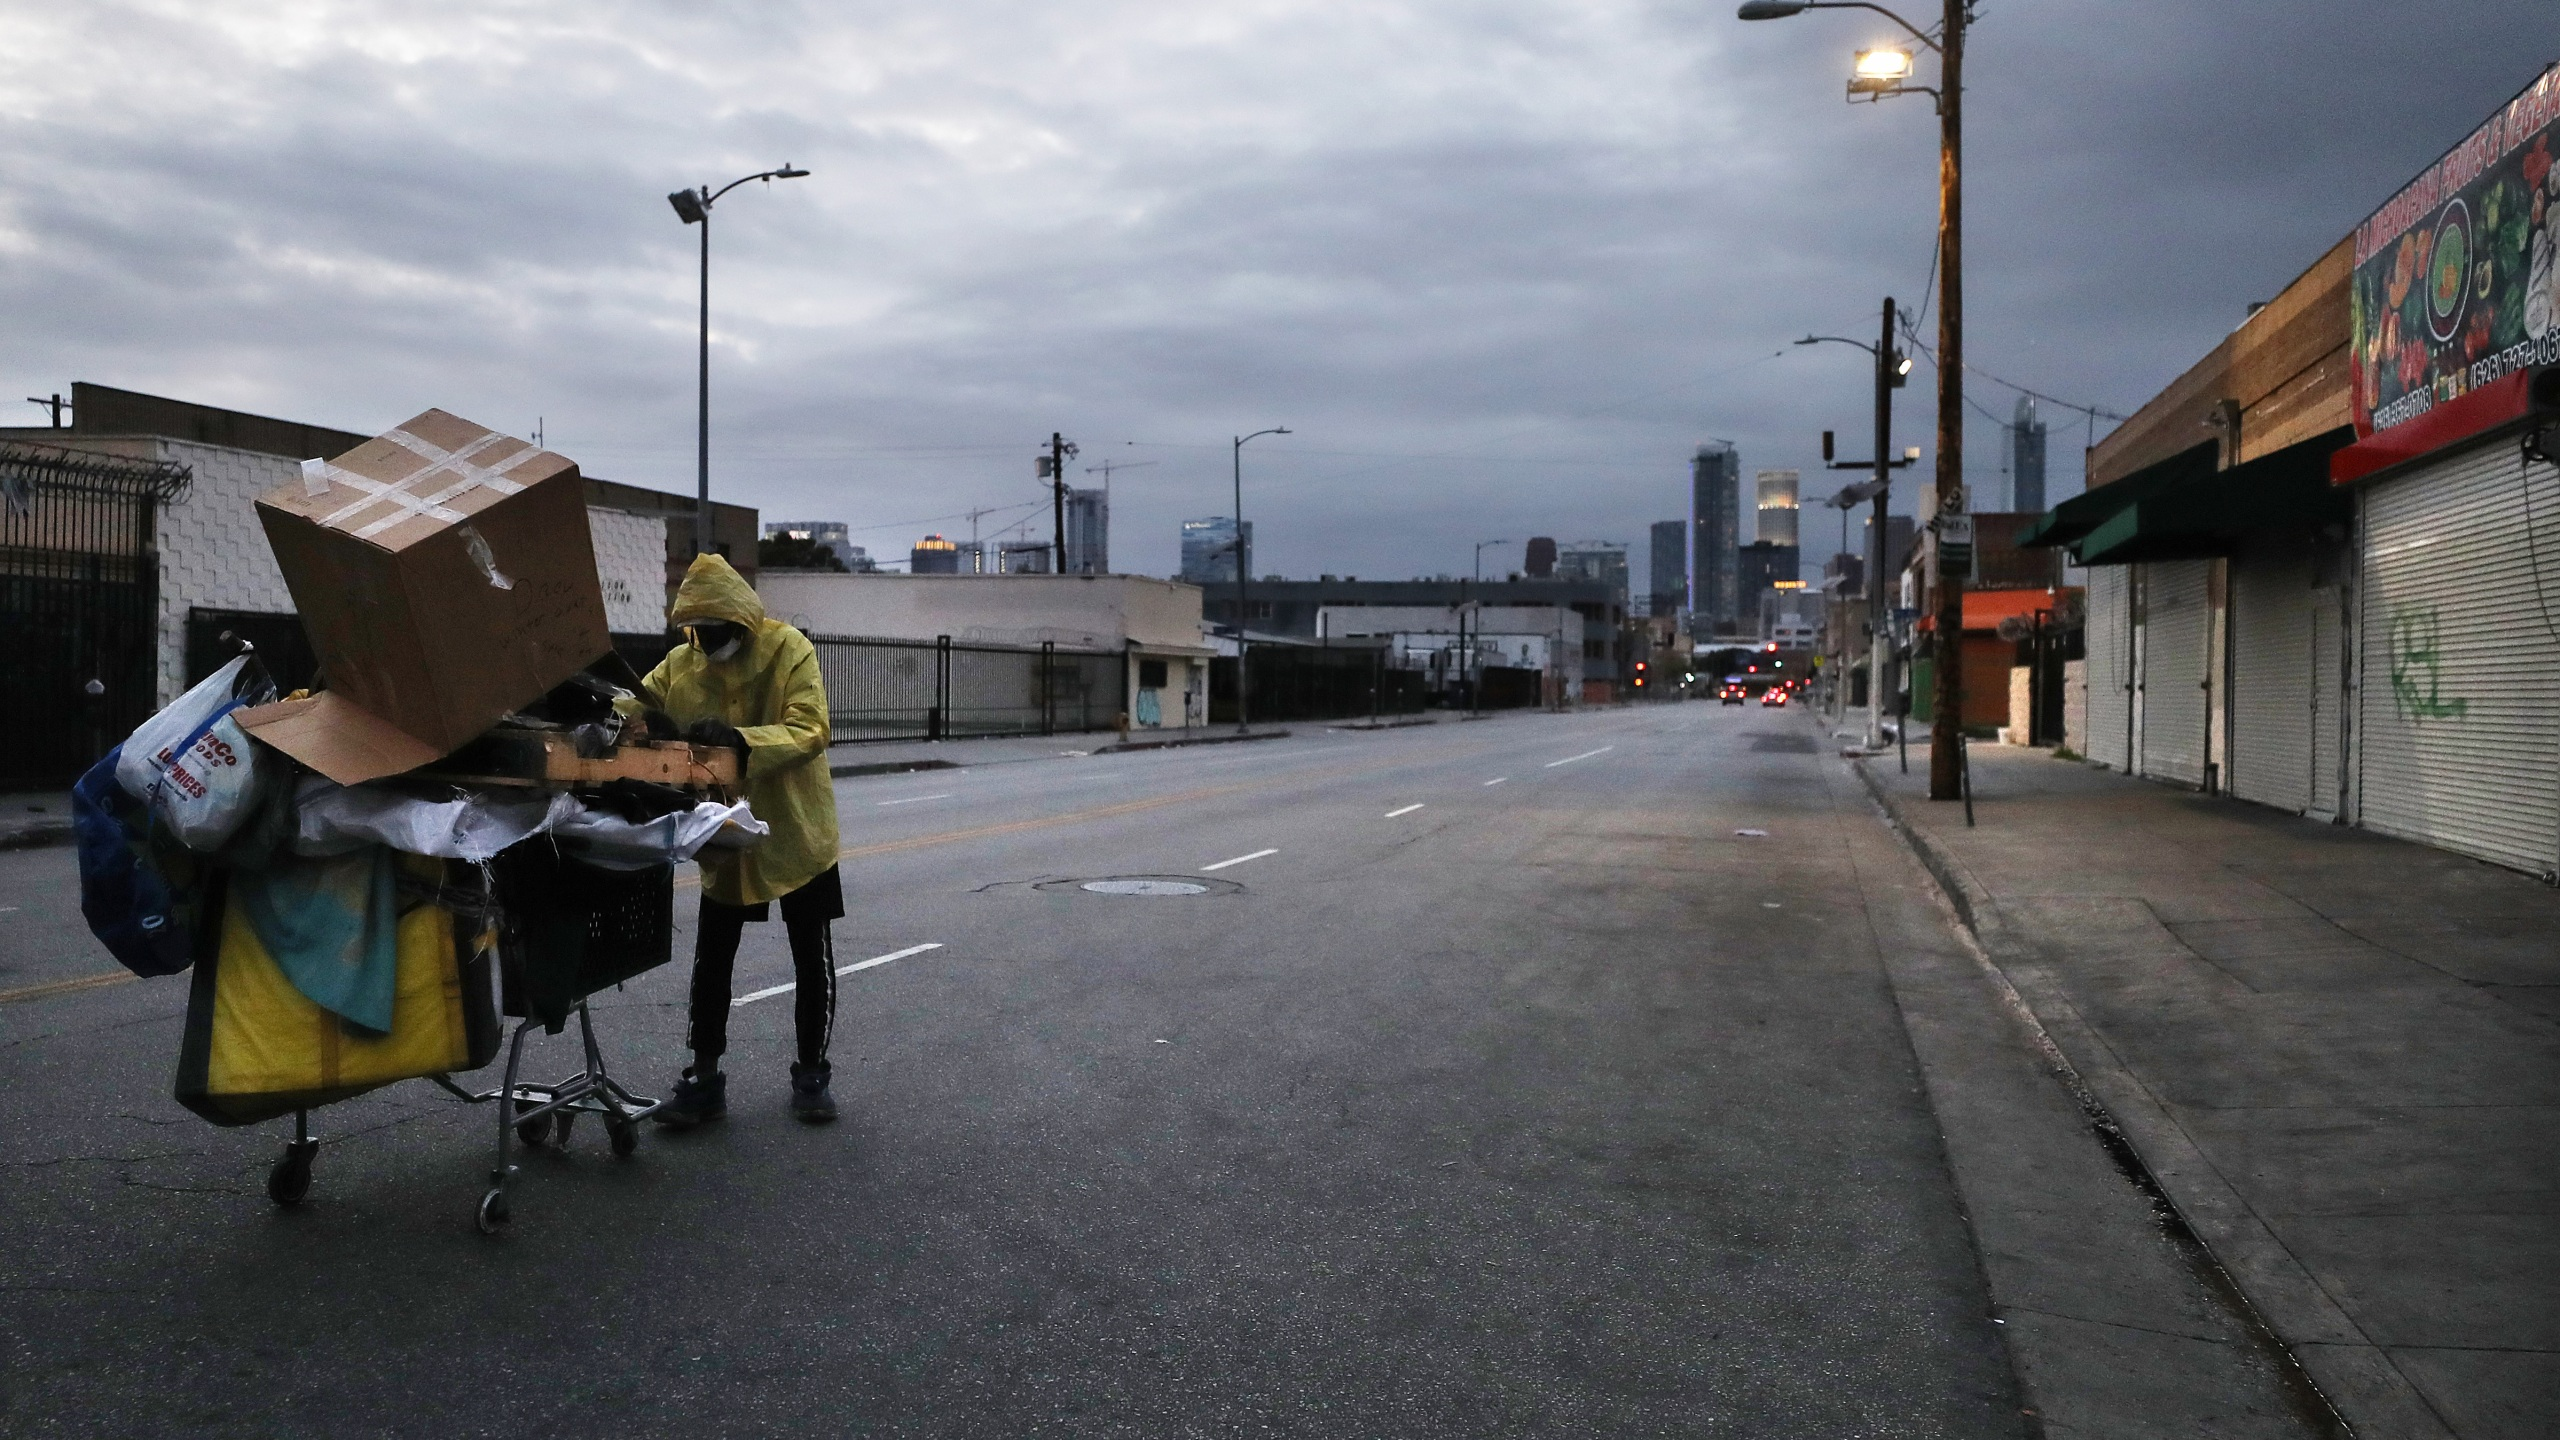 A man who is originally from Texas and currently homeless pushes a cart with his belongings on a downtown Los Angeles street amidst the coronavirus pandemic on April 18, 2020. (Credit: Mario Tama / Getty Images)